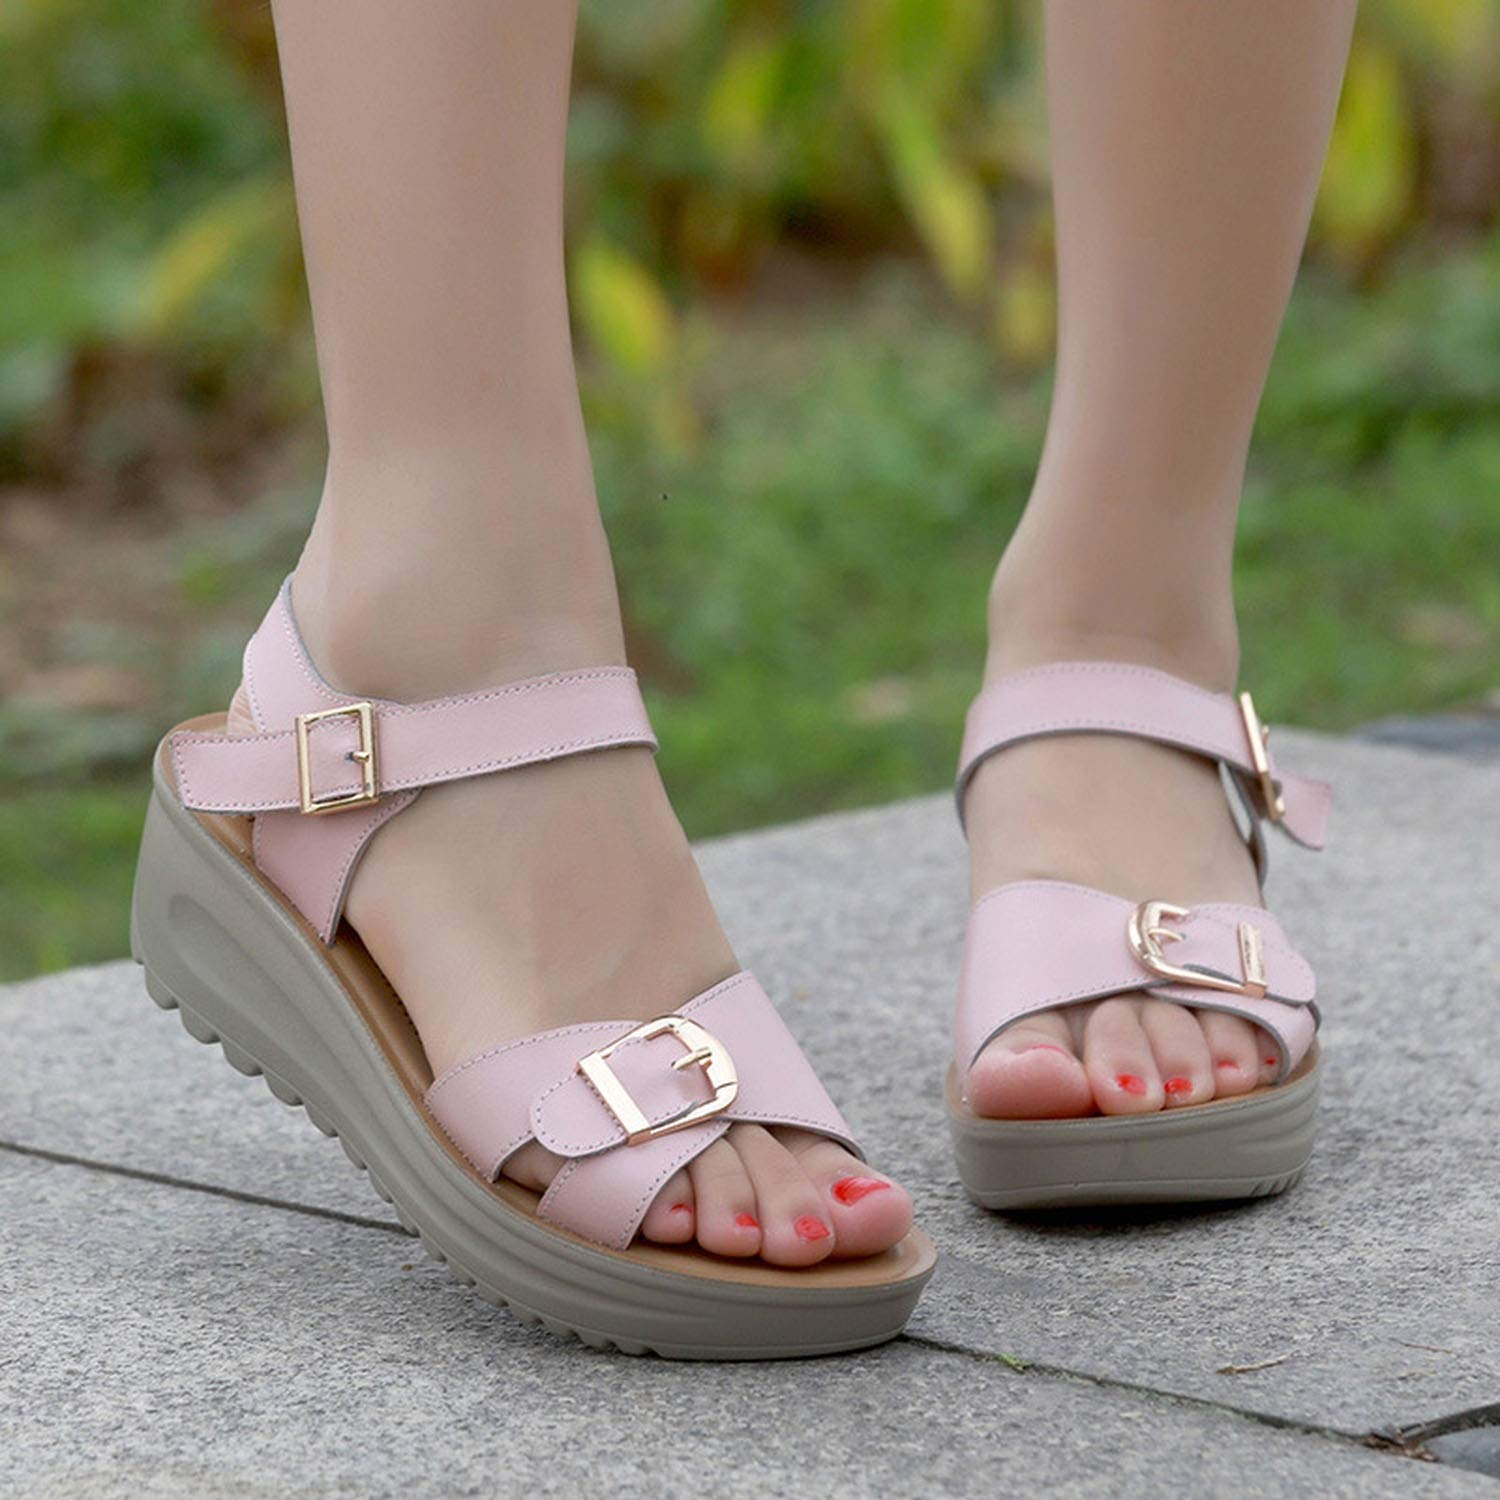 Fanatical-Night Women Sandals Summer Flat Sandals with Thick Casual Wedge Sandals Women Shoes Buckle Flat Sandals